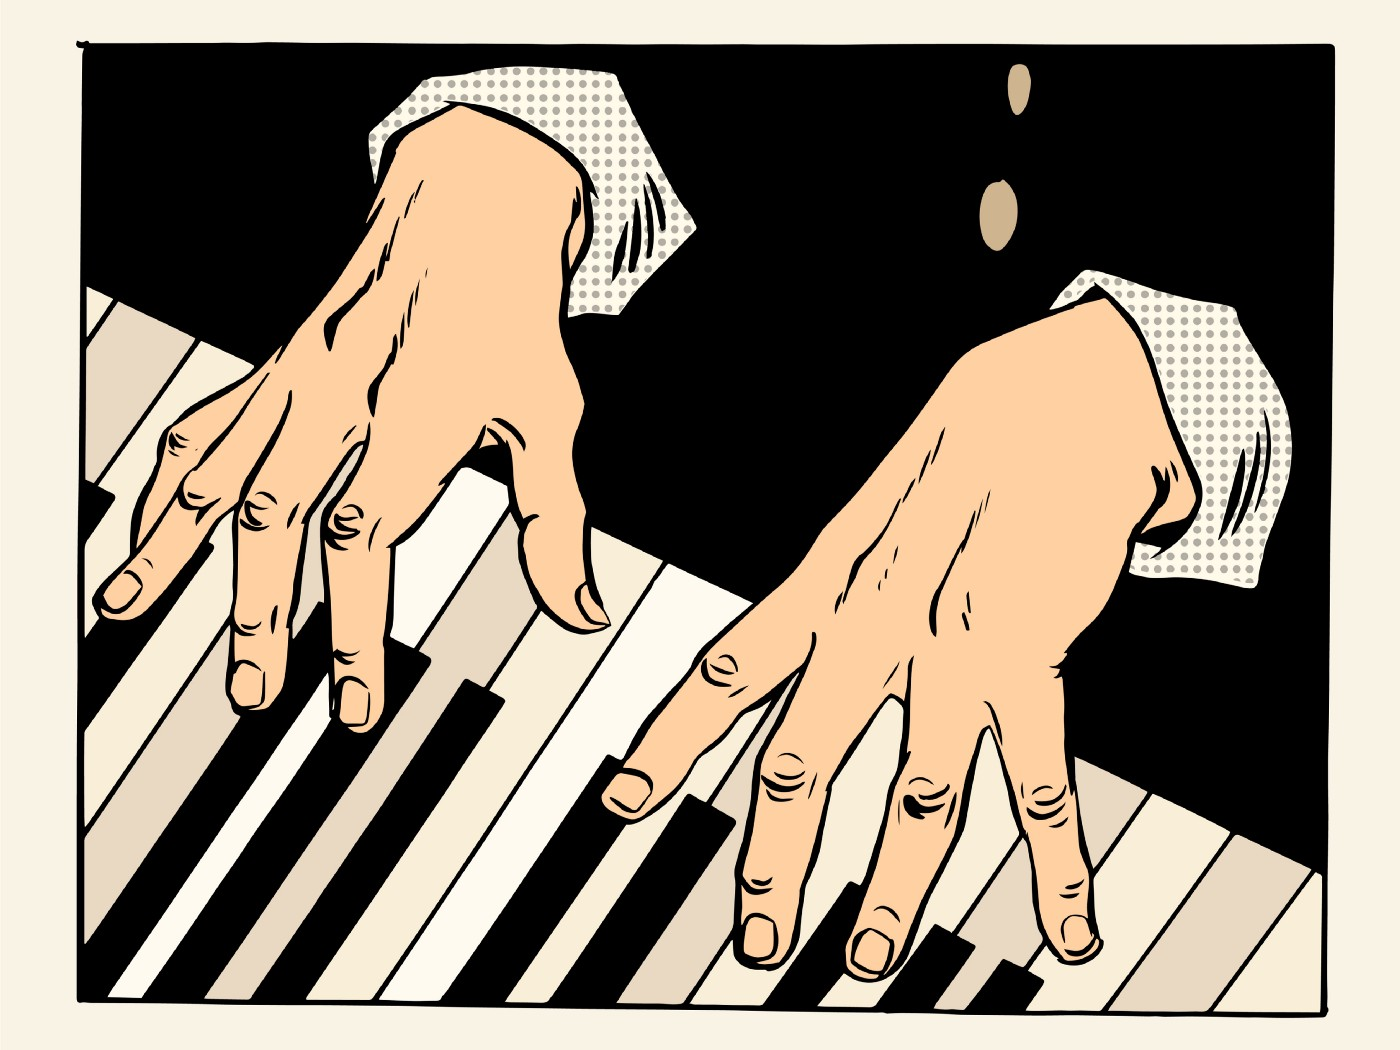 Two male hands playing a piano keyboard